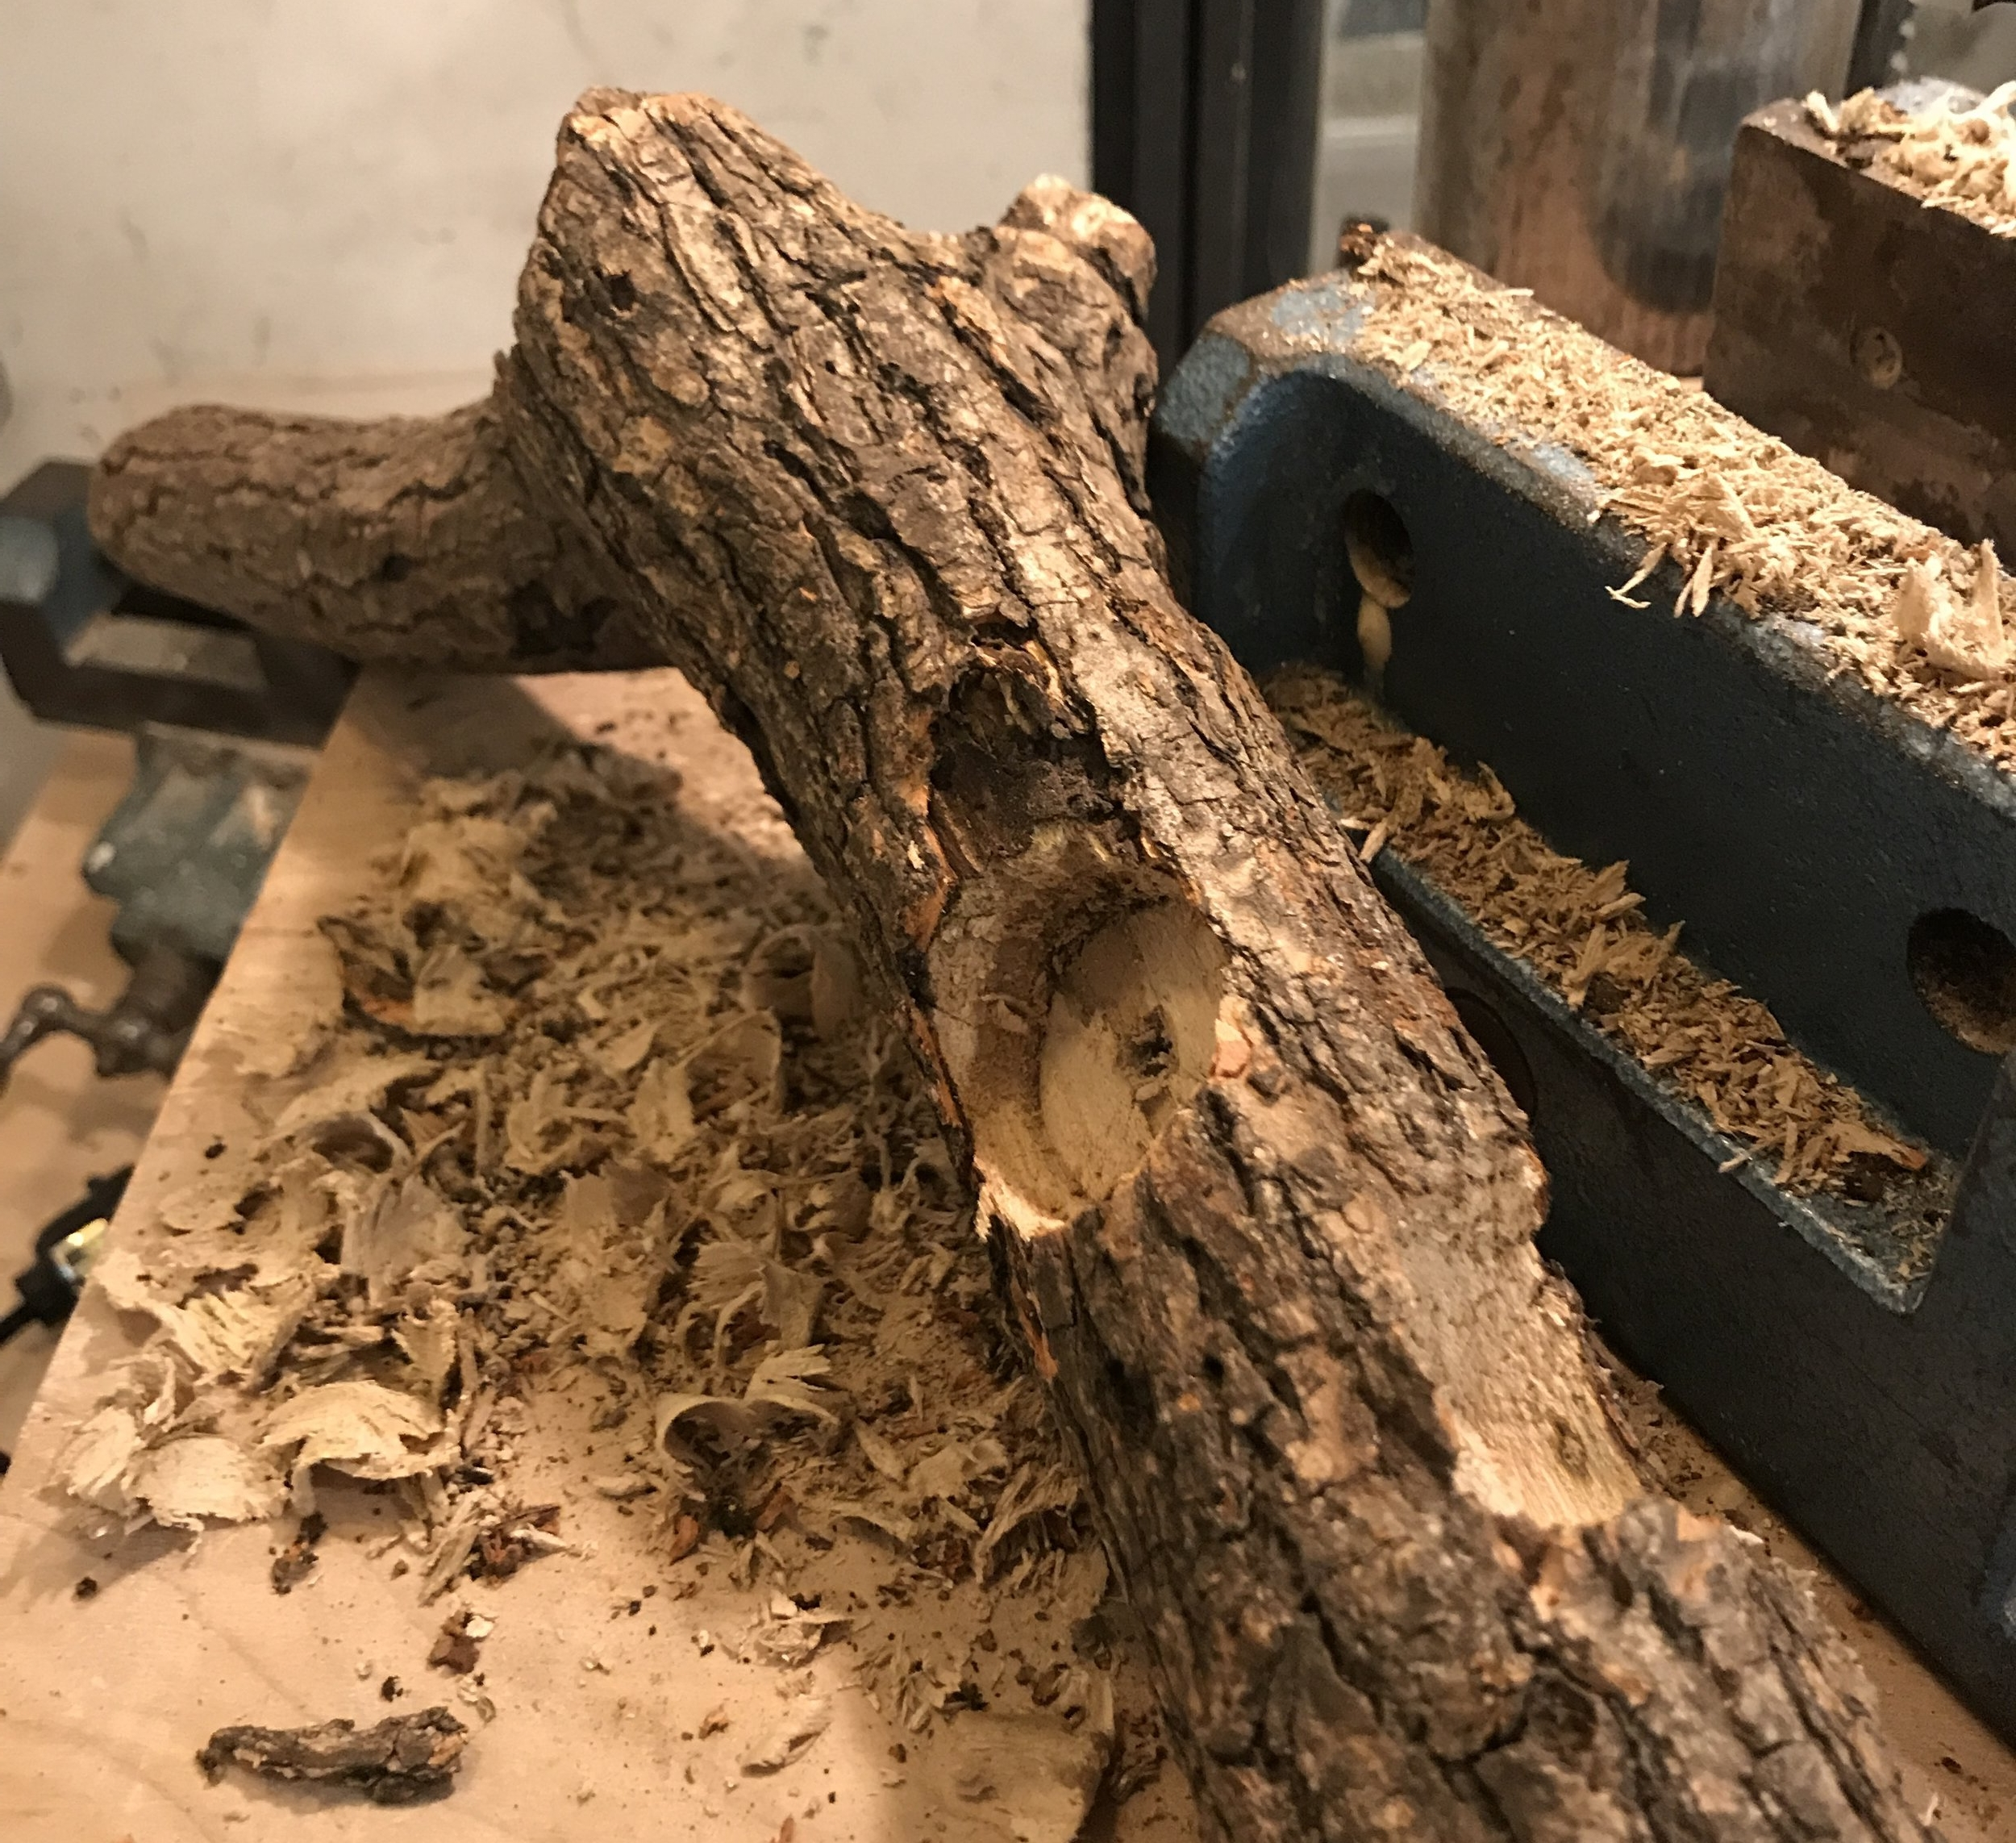 this was a test log to make sure the bit would drill well into the wood.